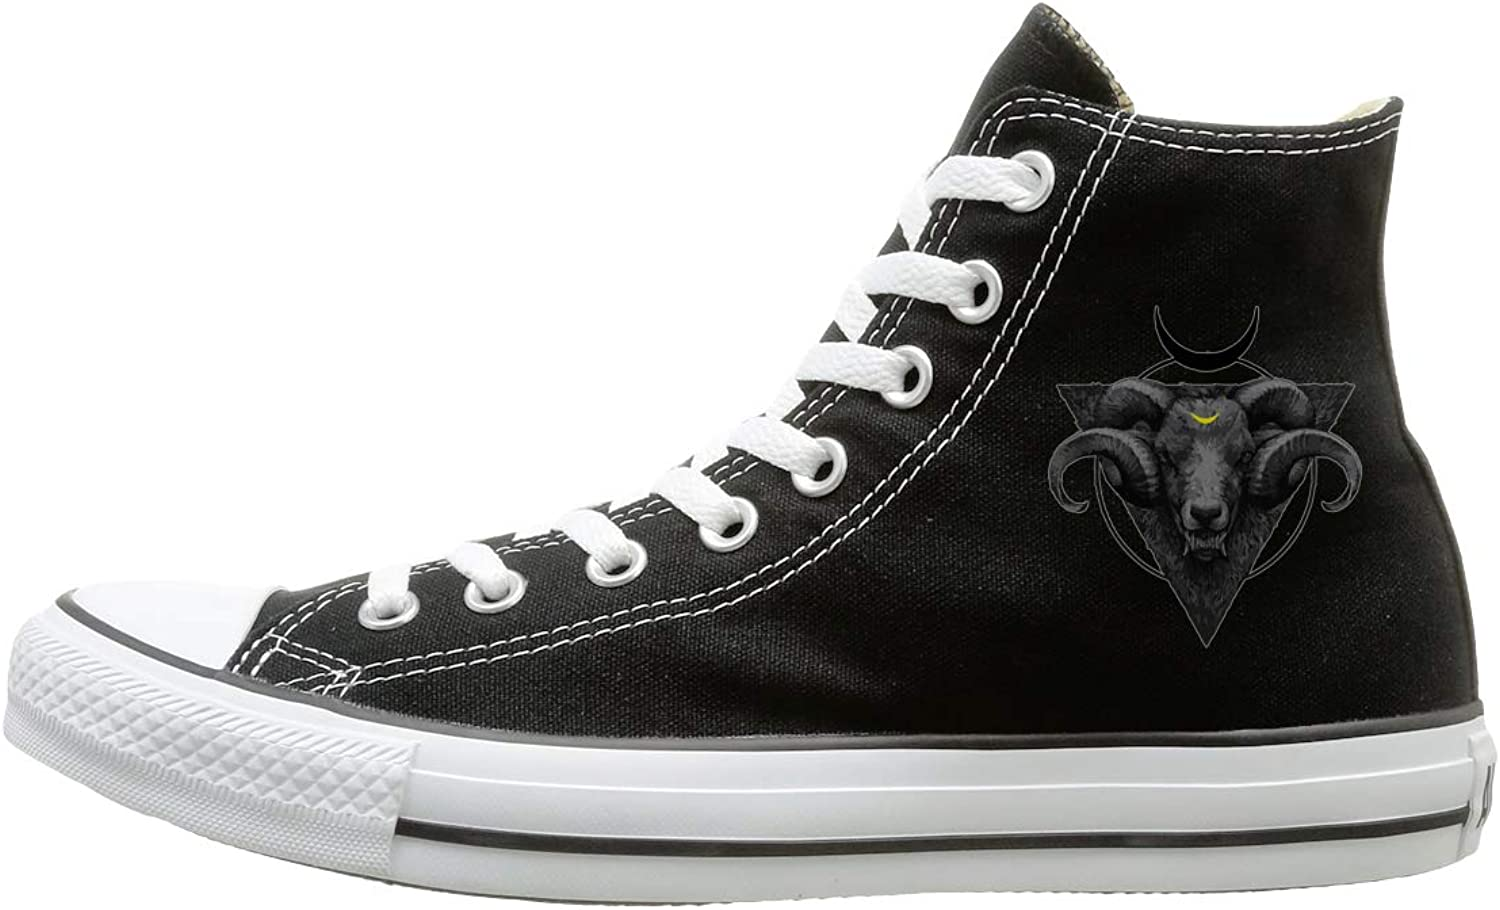 Satanic Baphomet Goats Unisex Casual High-Top shoes Comfortable And Durable In Rubber Sole